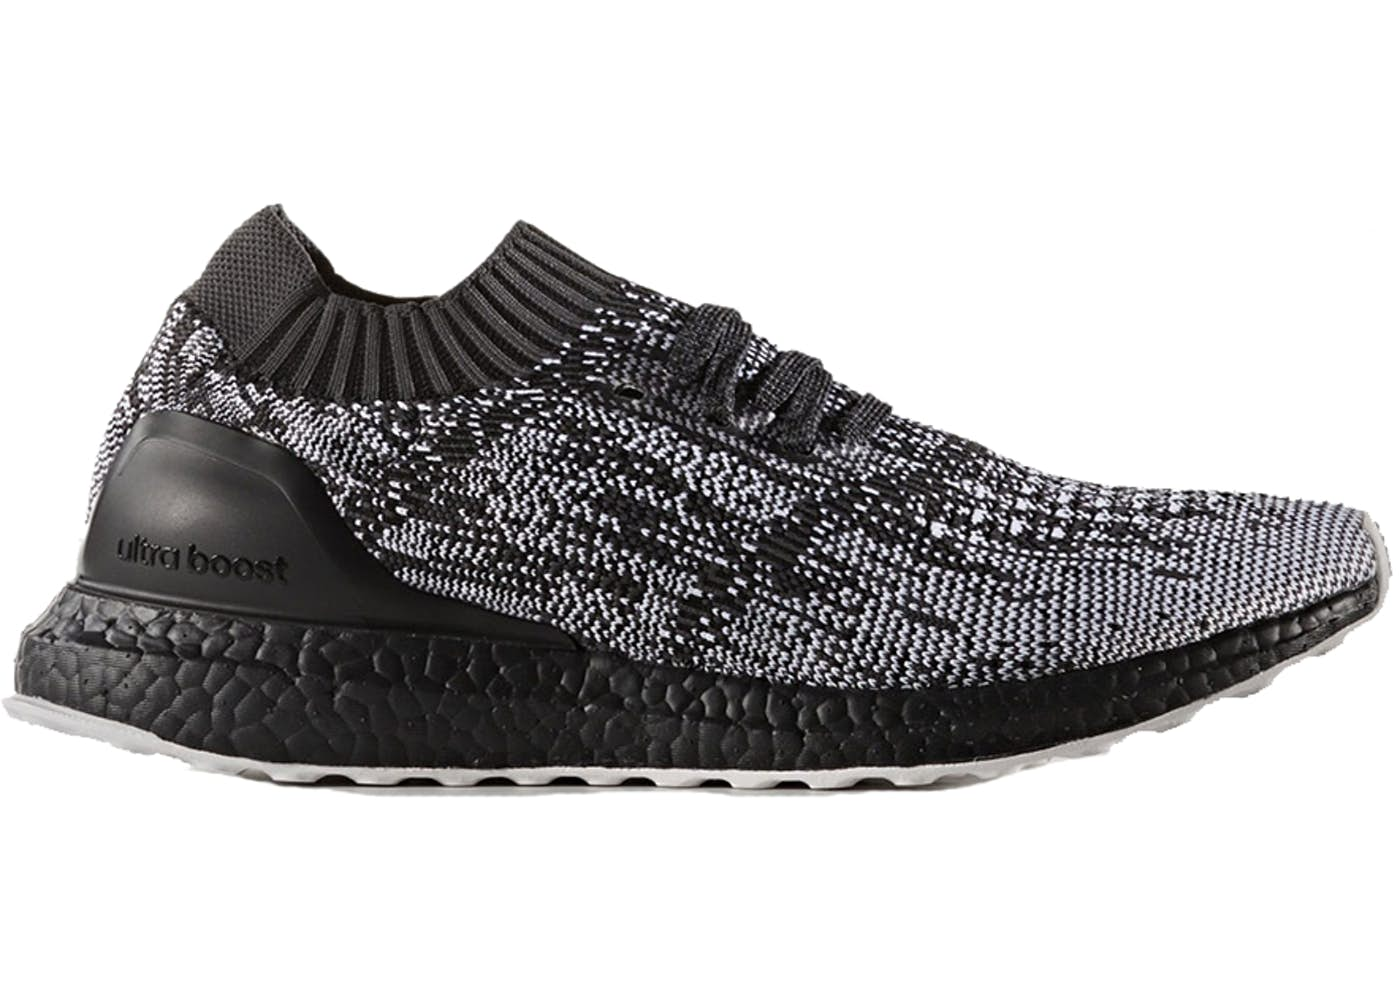 a9d7b4404 ... adidas Ultra Boost Uncaged Black White . ...